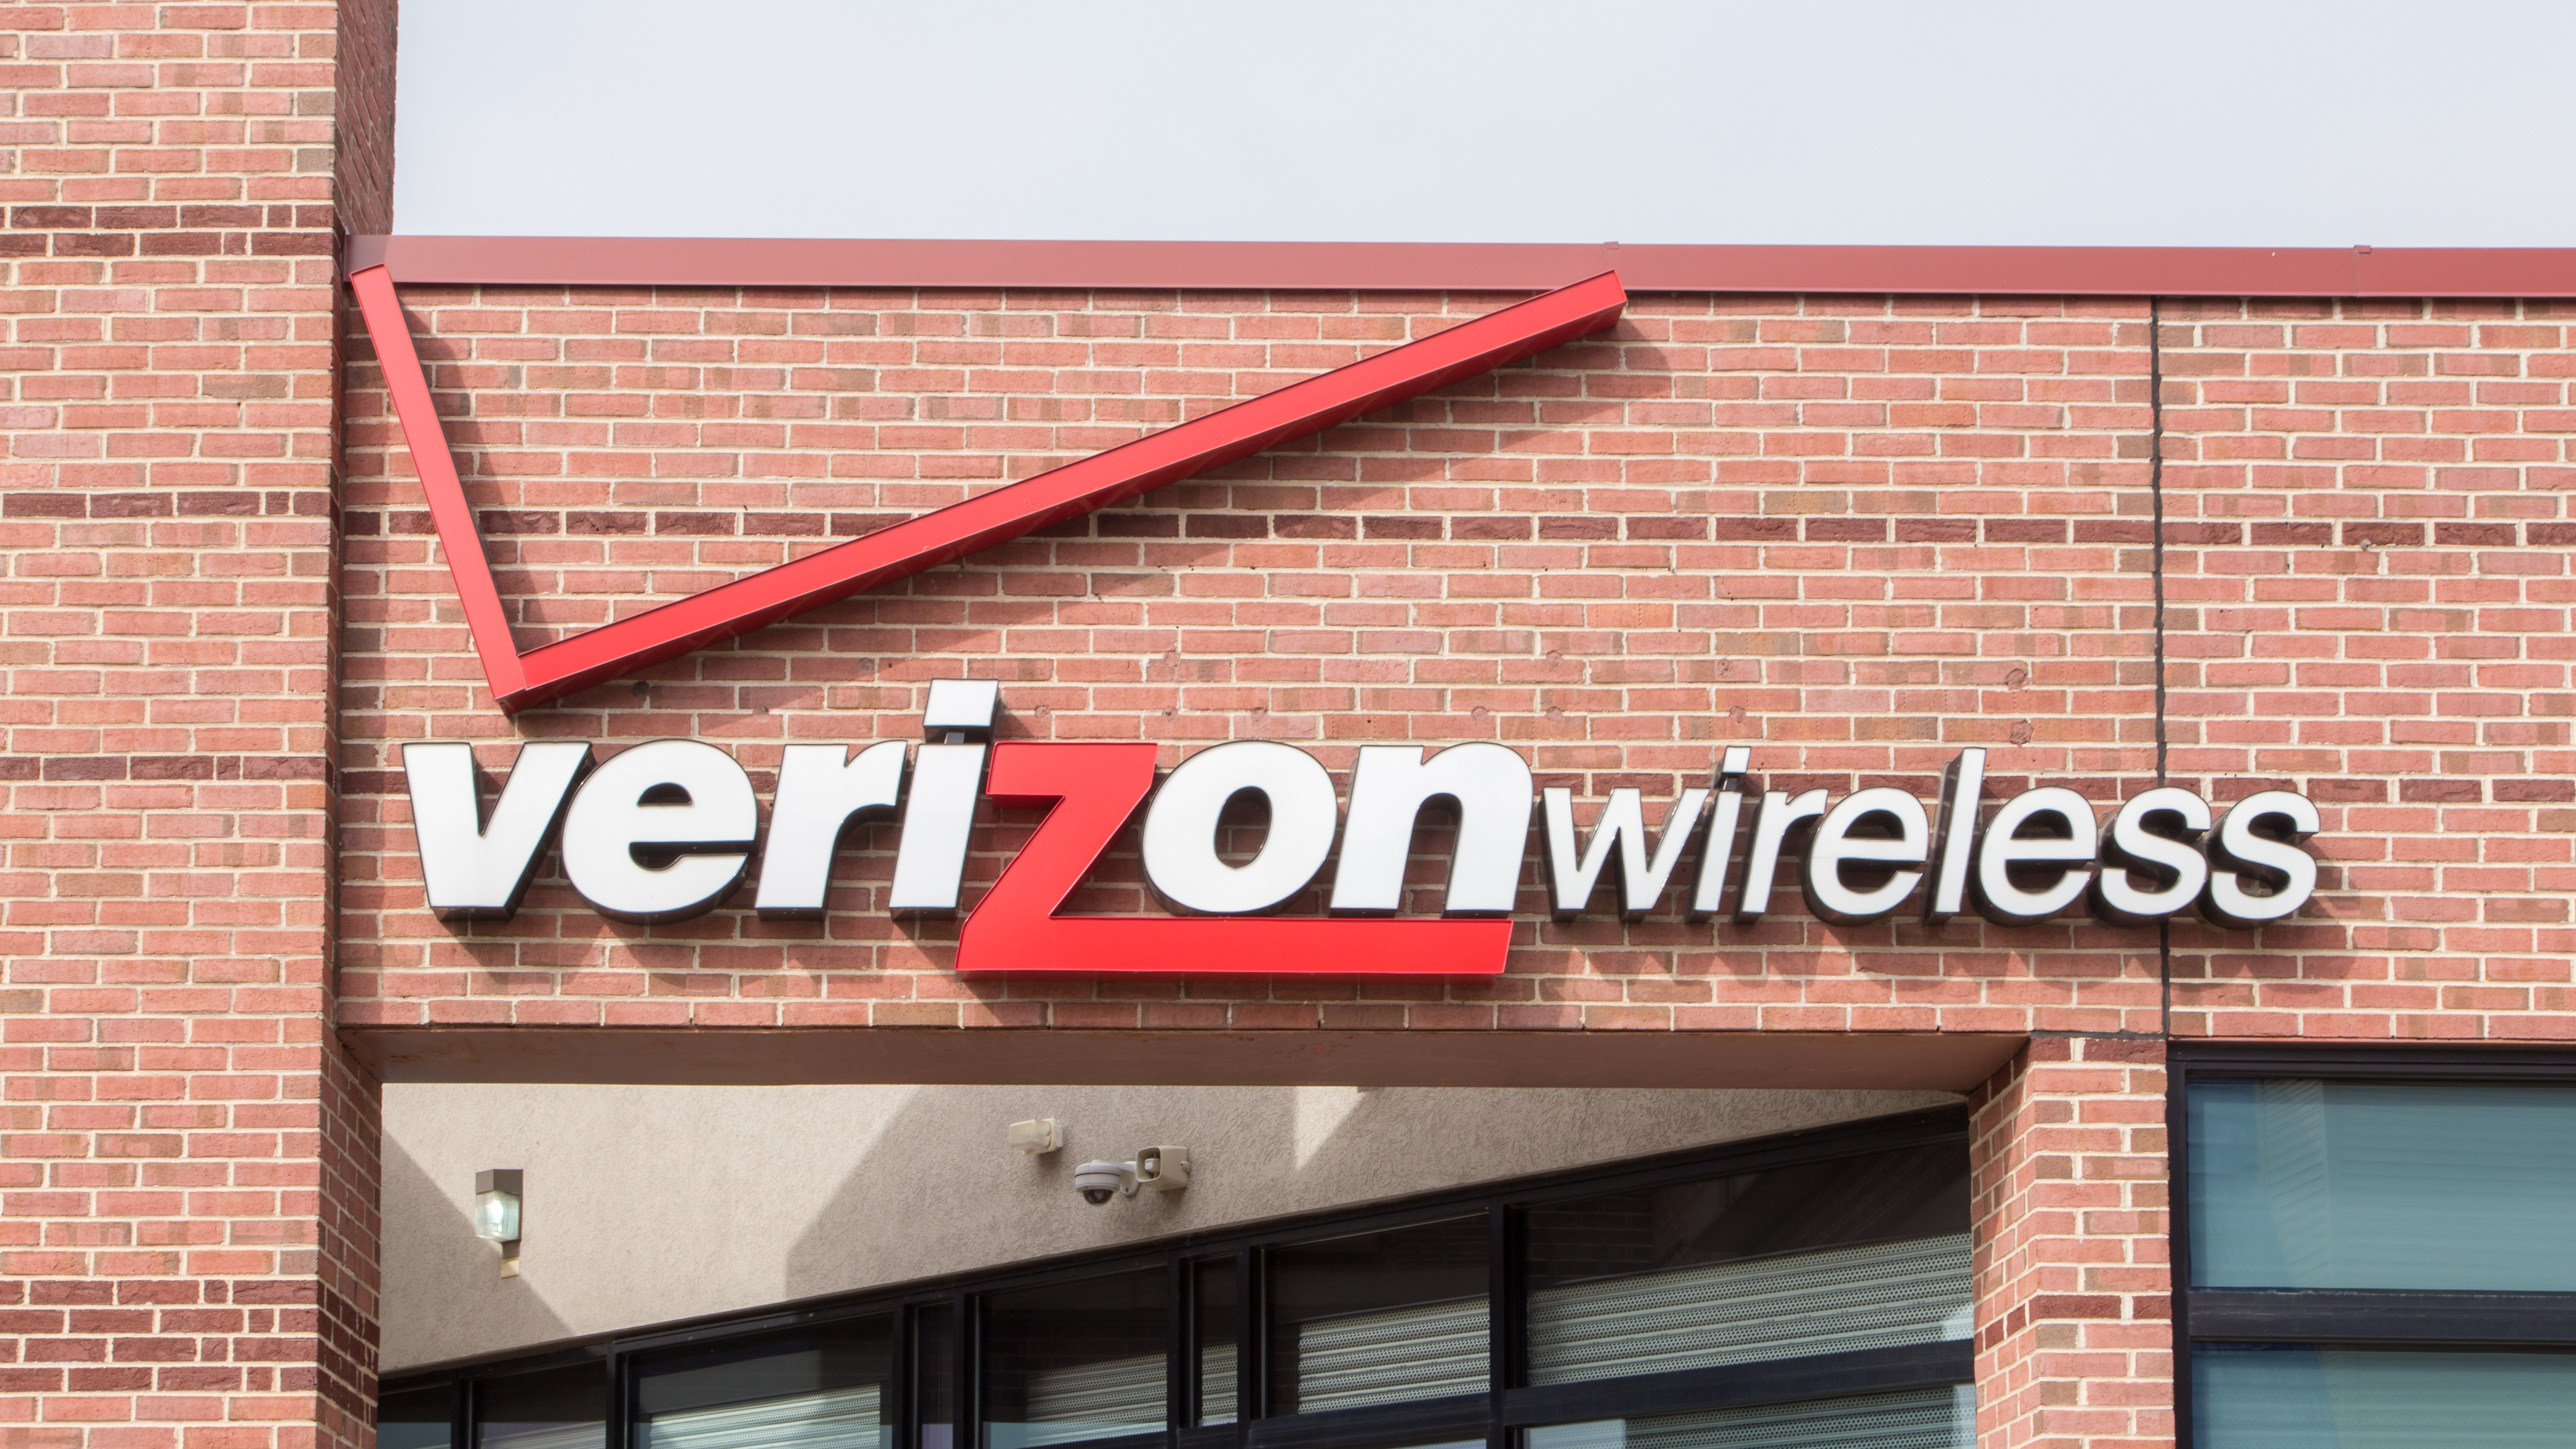 FCC Chairman: Verizon Uses a 'Disturbing' Loophole to Throttle Unlimited Data